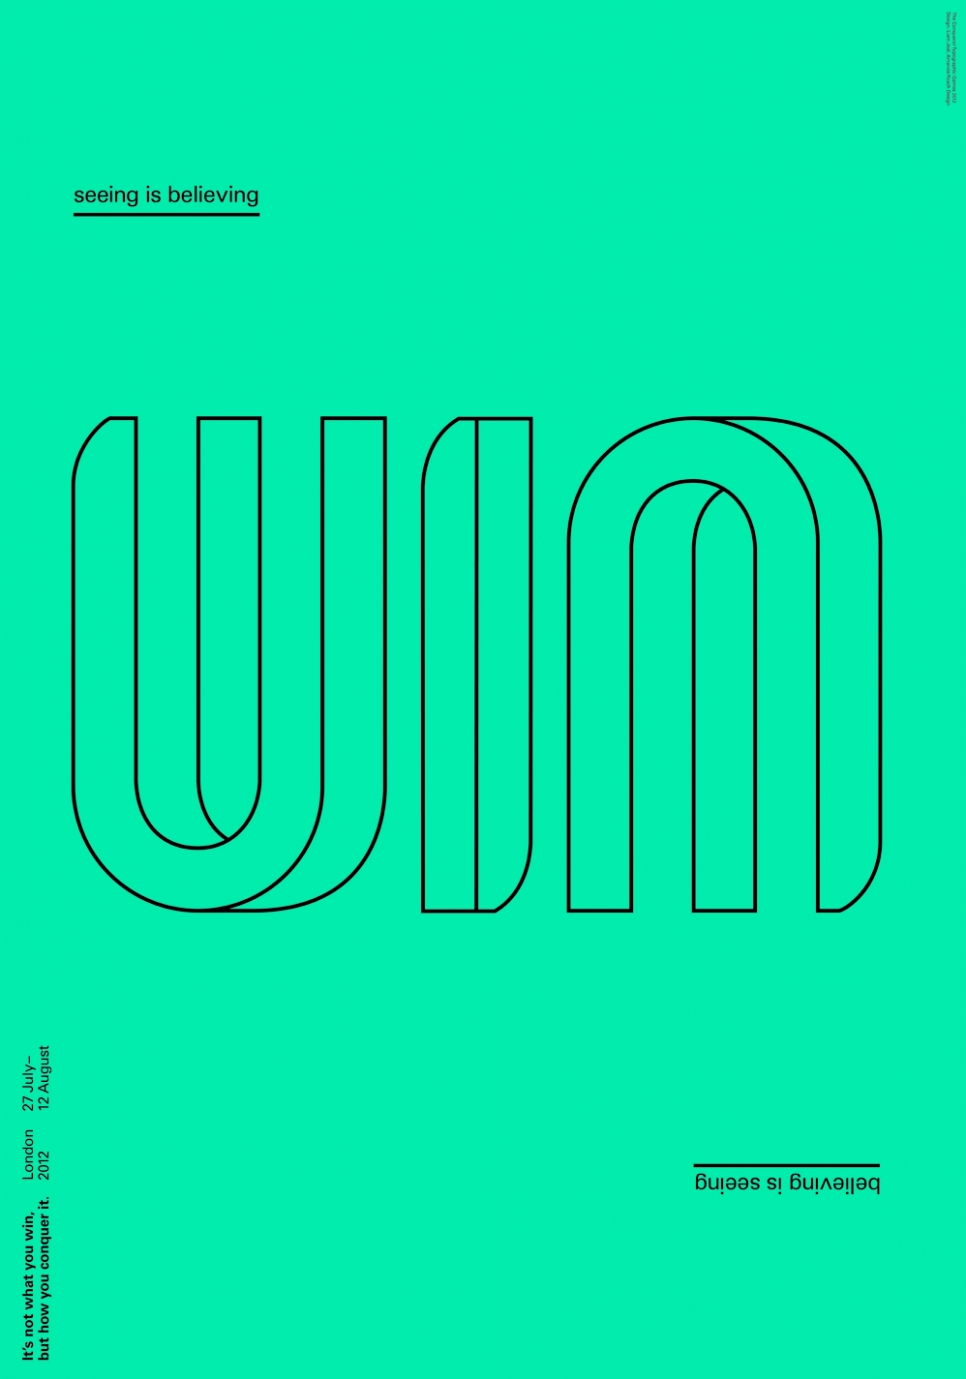 Typographic Games winning poster made by Liam Jeal